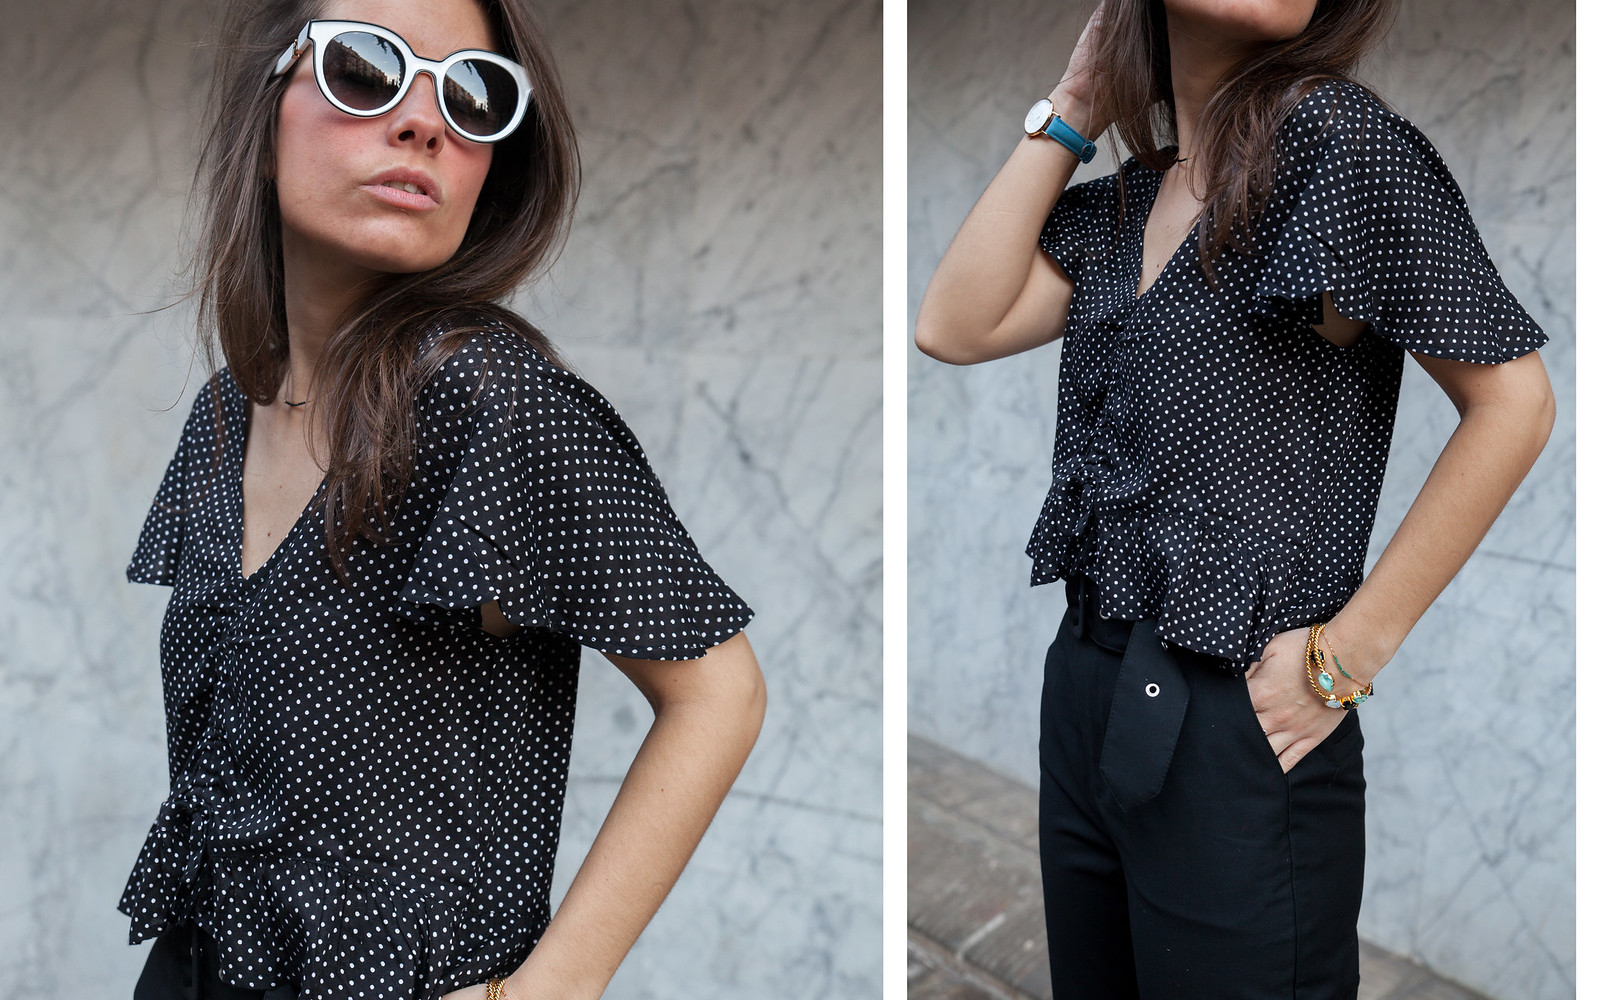 08_NA-KD_DOTS_BLACK_OUTFIT_THEGUESTGIRL_INFLUENCER_SPAIN